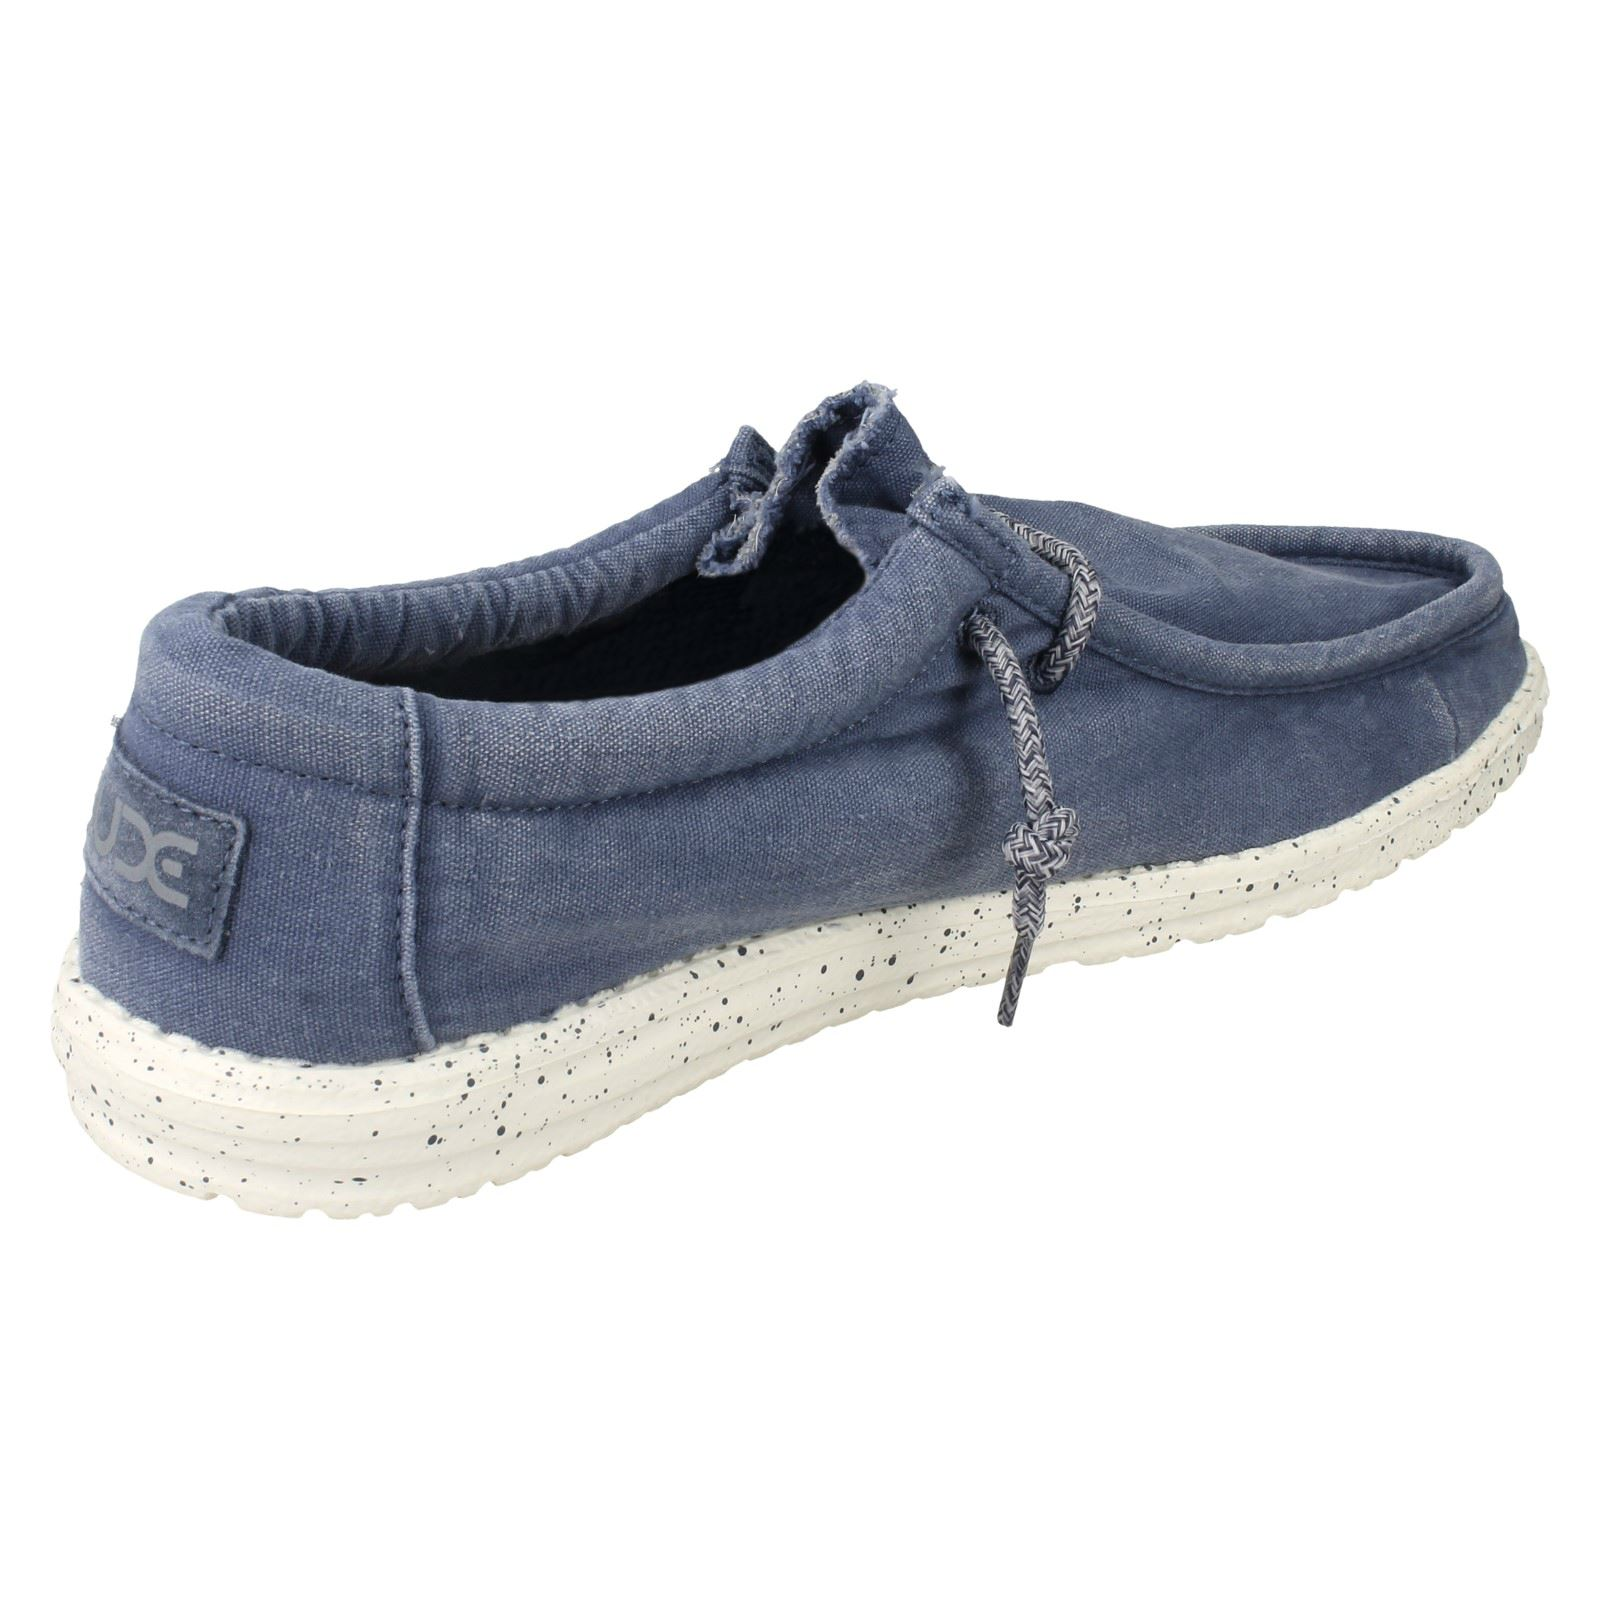 Mens Hey Shoes Dude Wally Washed Moccasin Shoes Hey e0443a